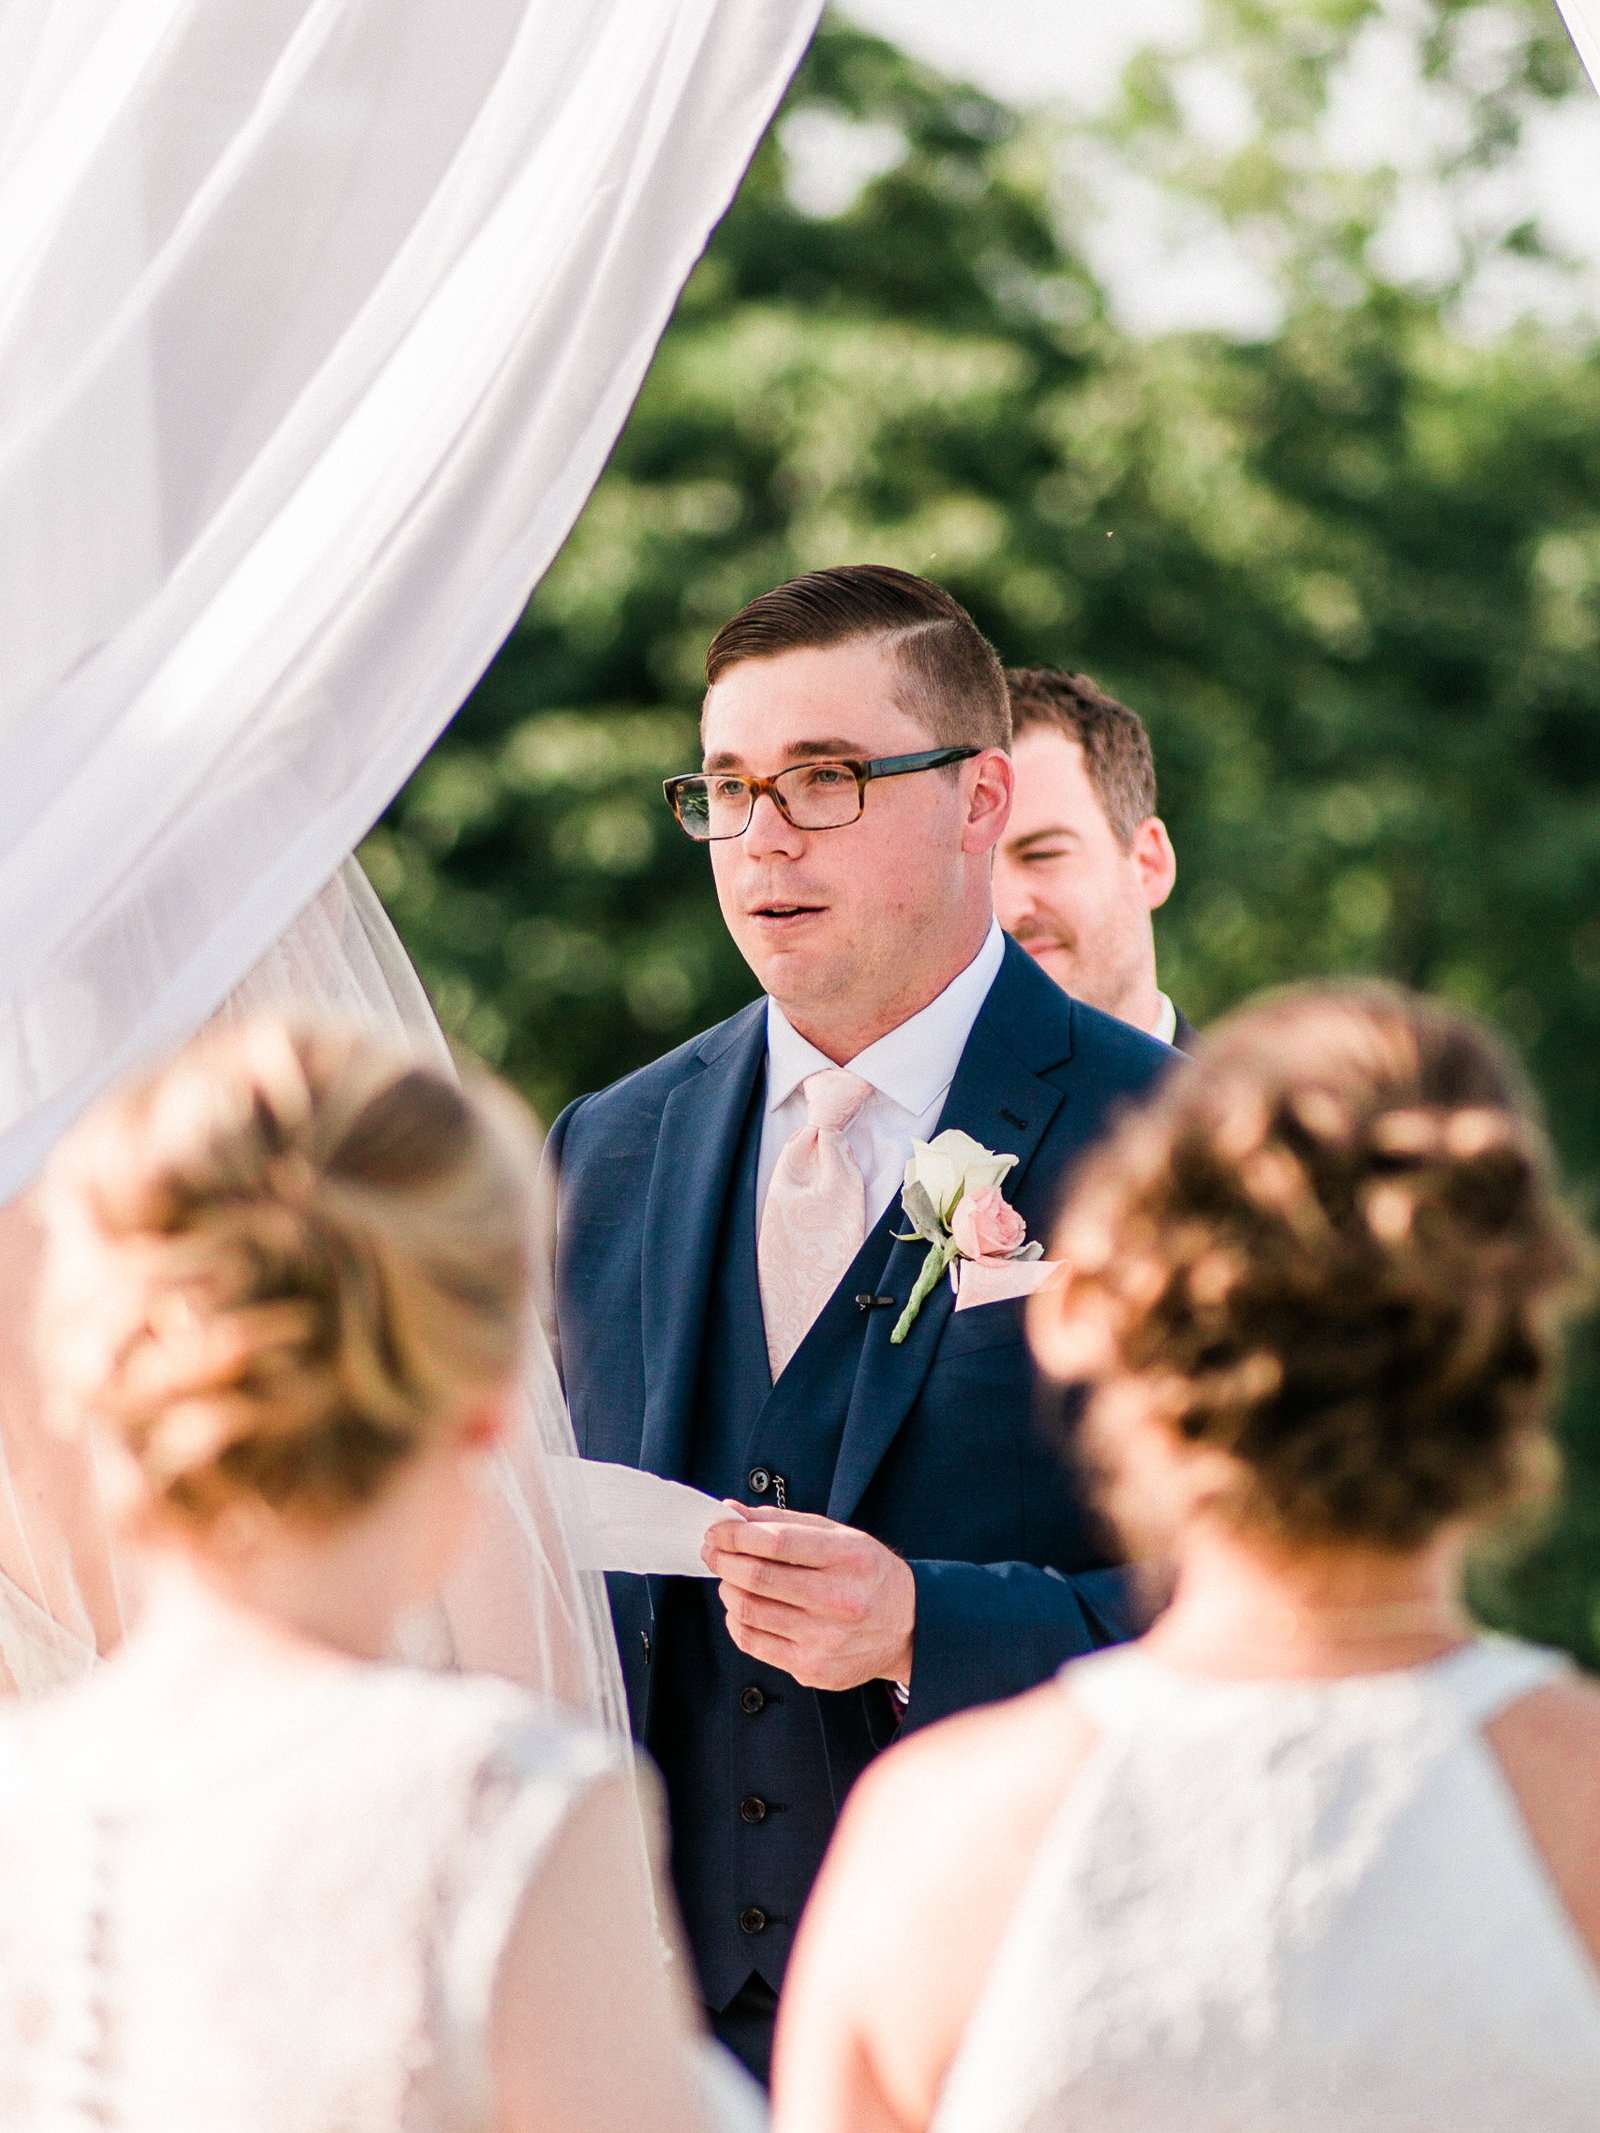 Groom reads his vow to his bride in their ceremony